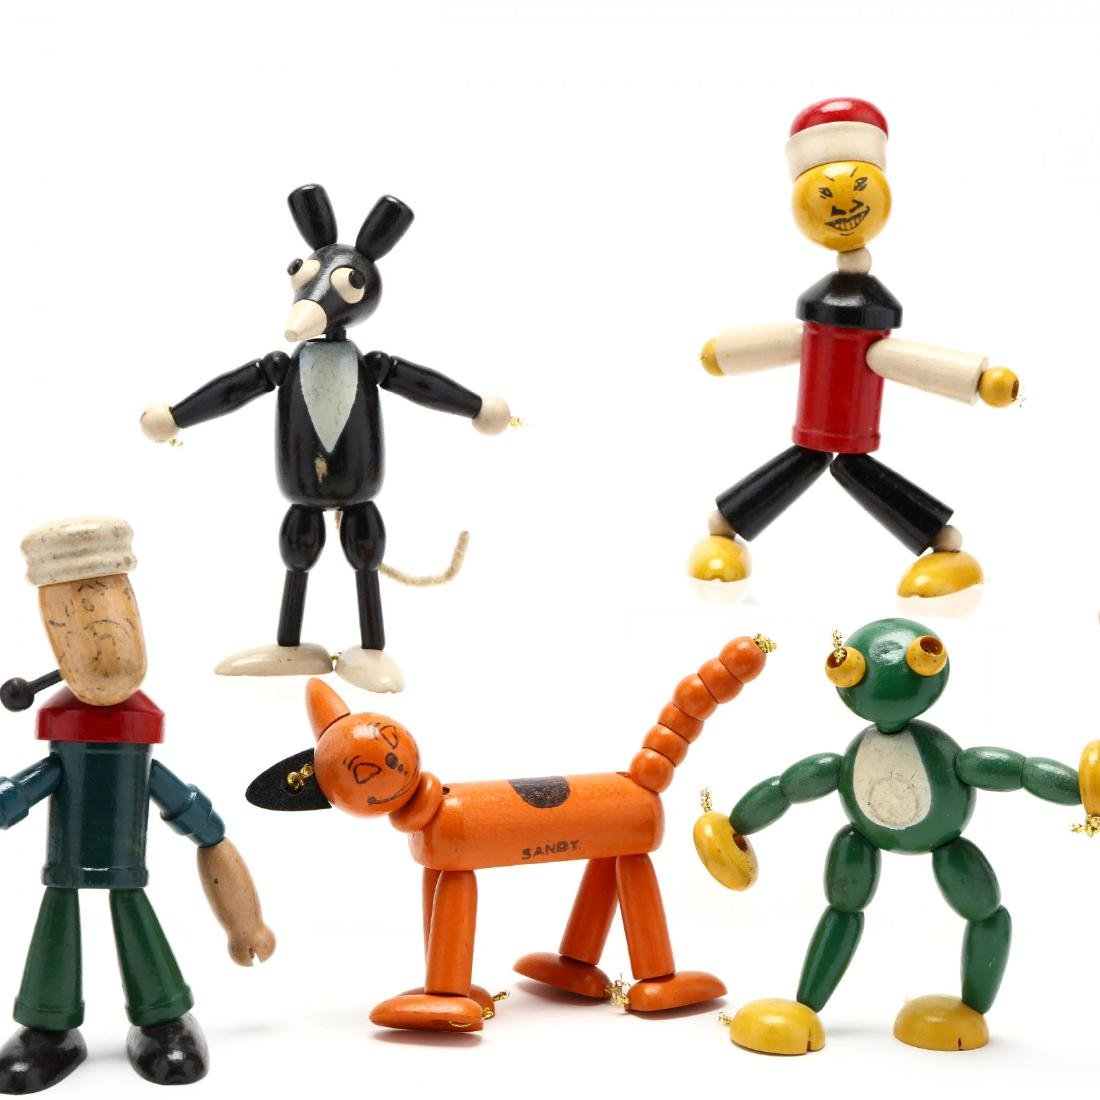 A Group of Articulated Wooden Toys - 3